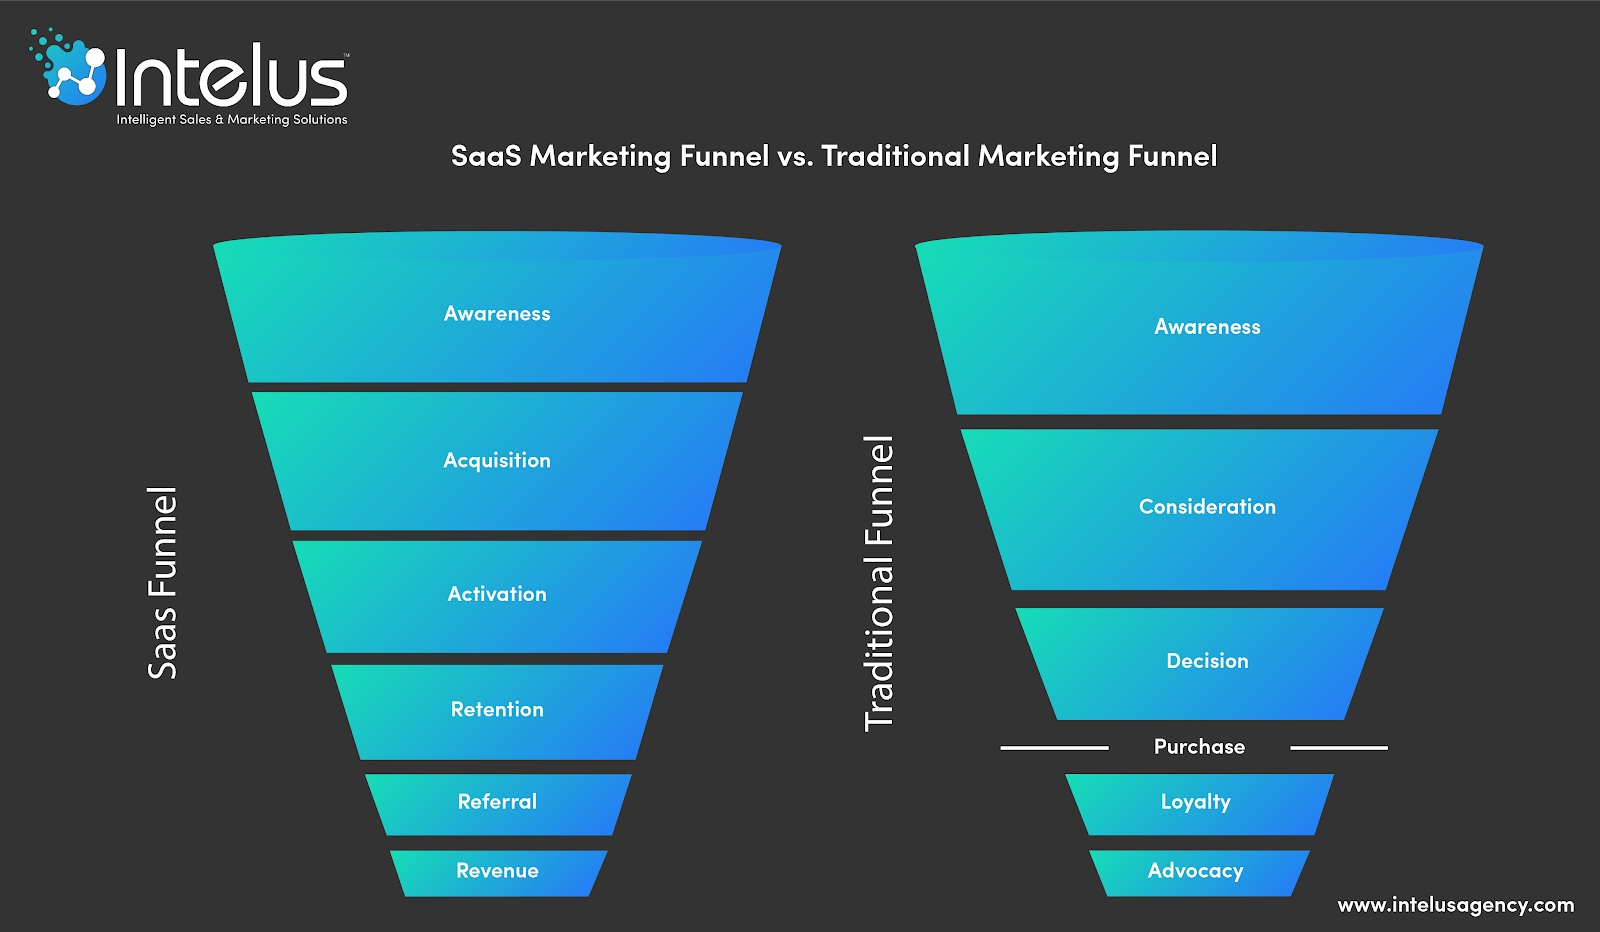 SaaS marketing vs traditional markeitng funnel